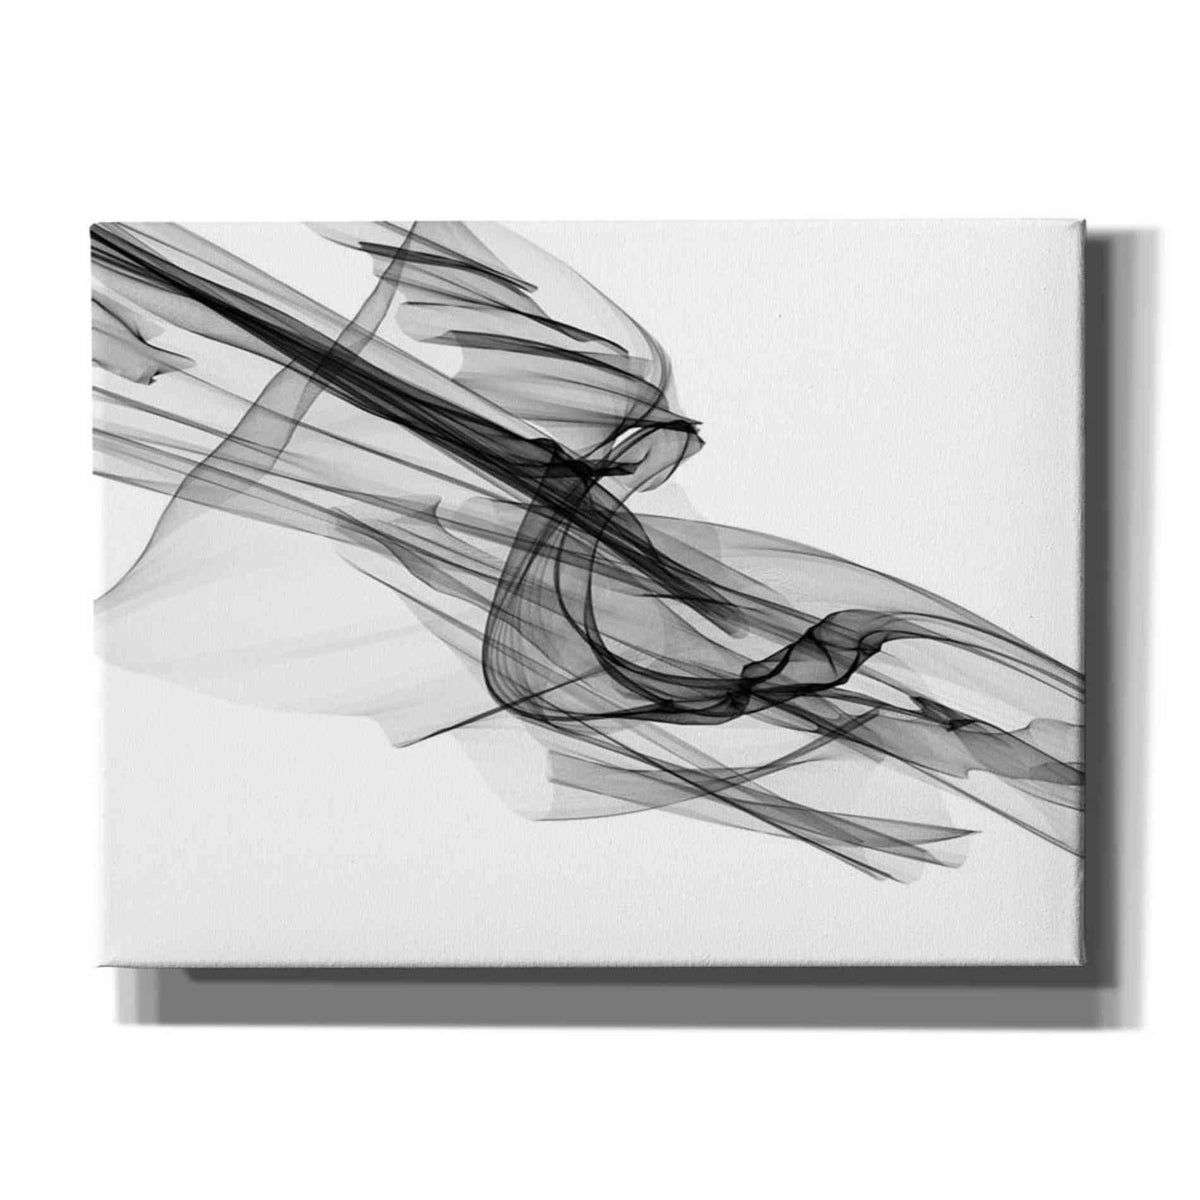 Epic Graffiti 'Abstract Black and White 19-48' by Irena Orlov, Giclee Canvas Wall Art